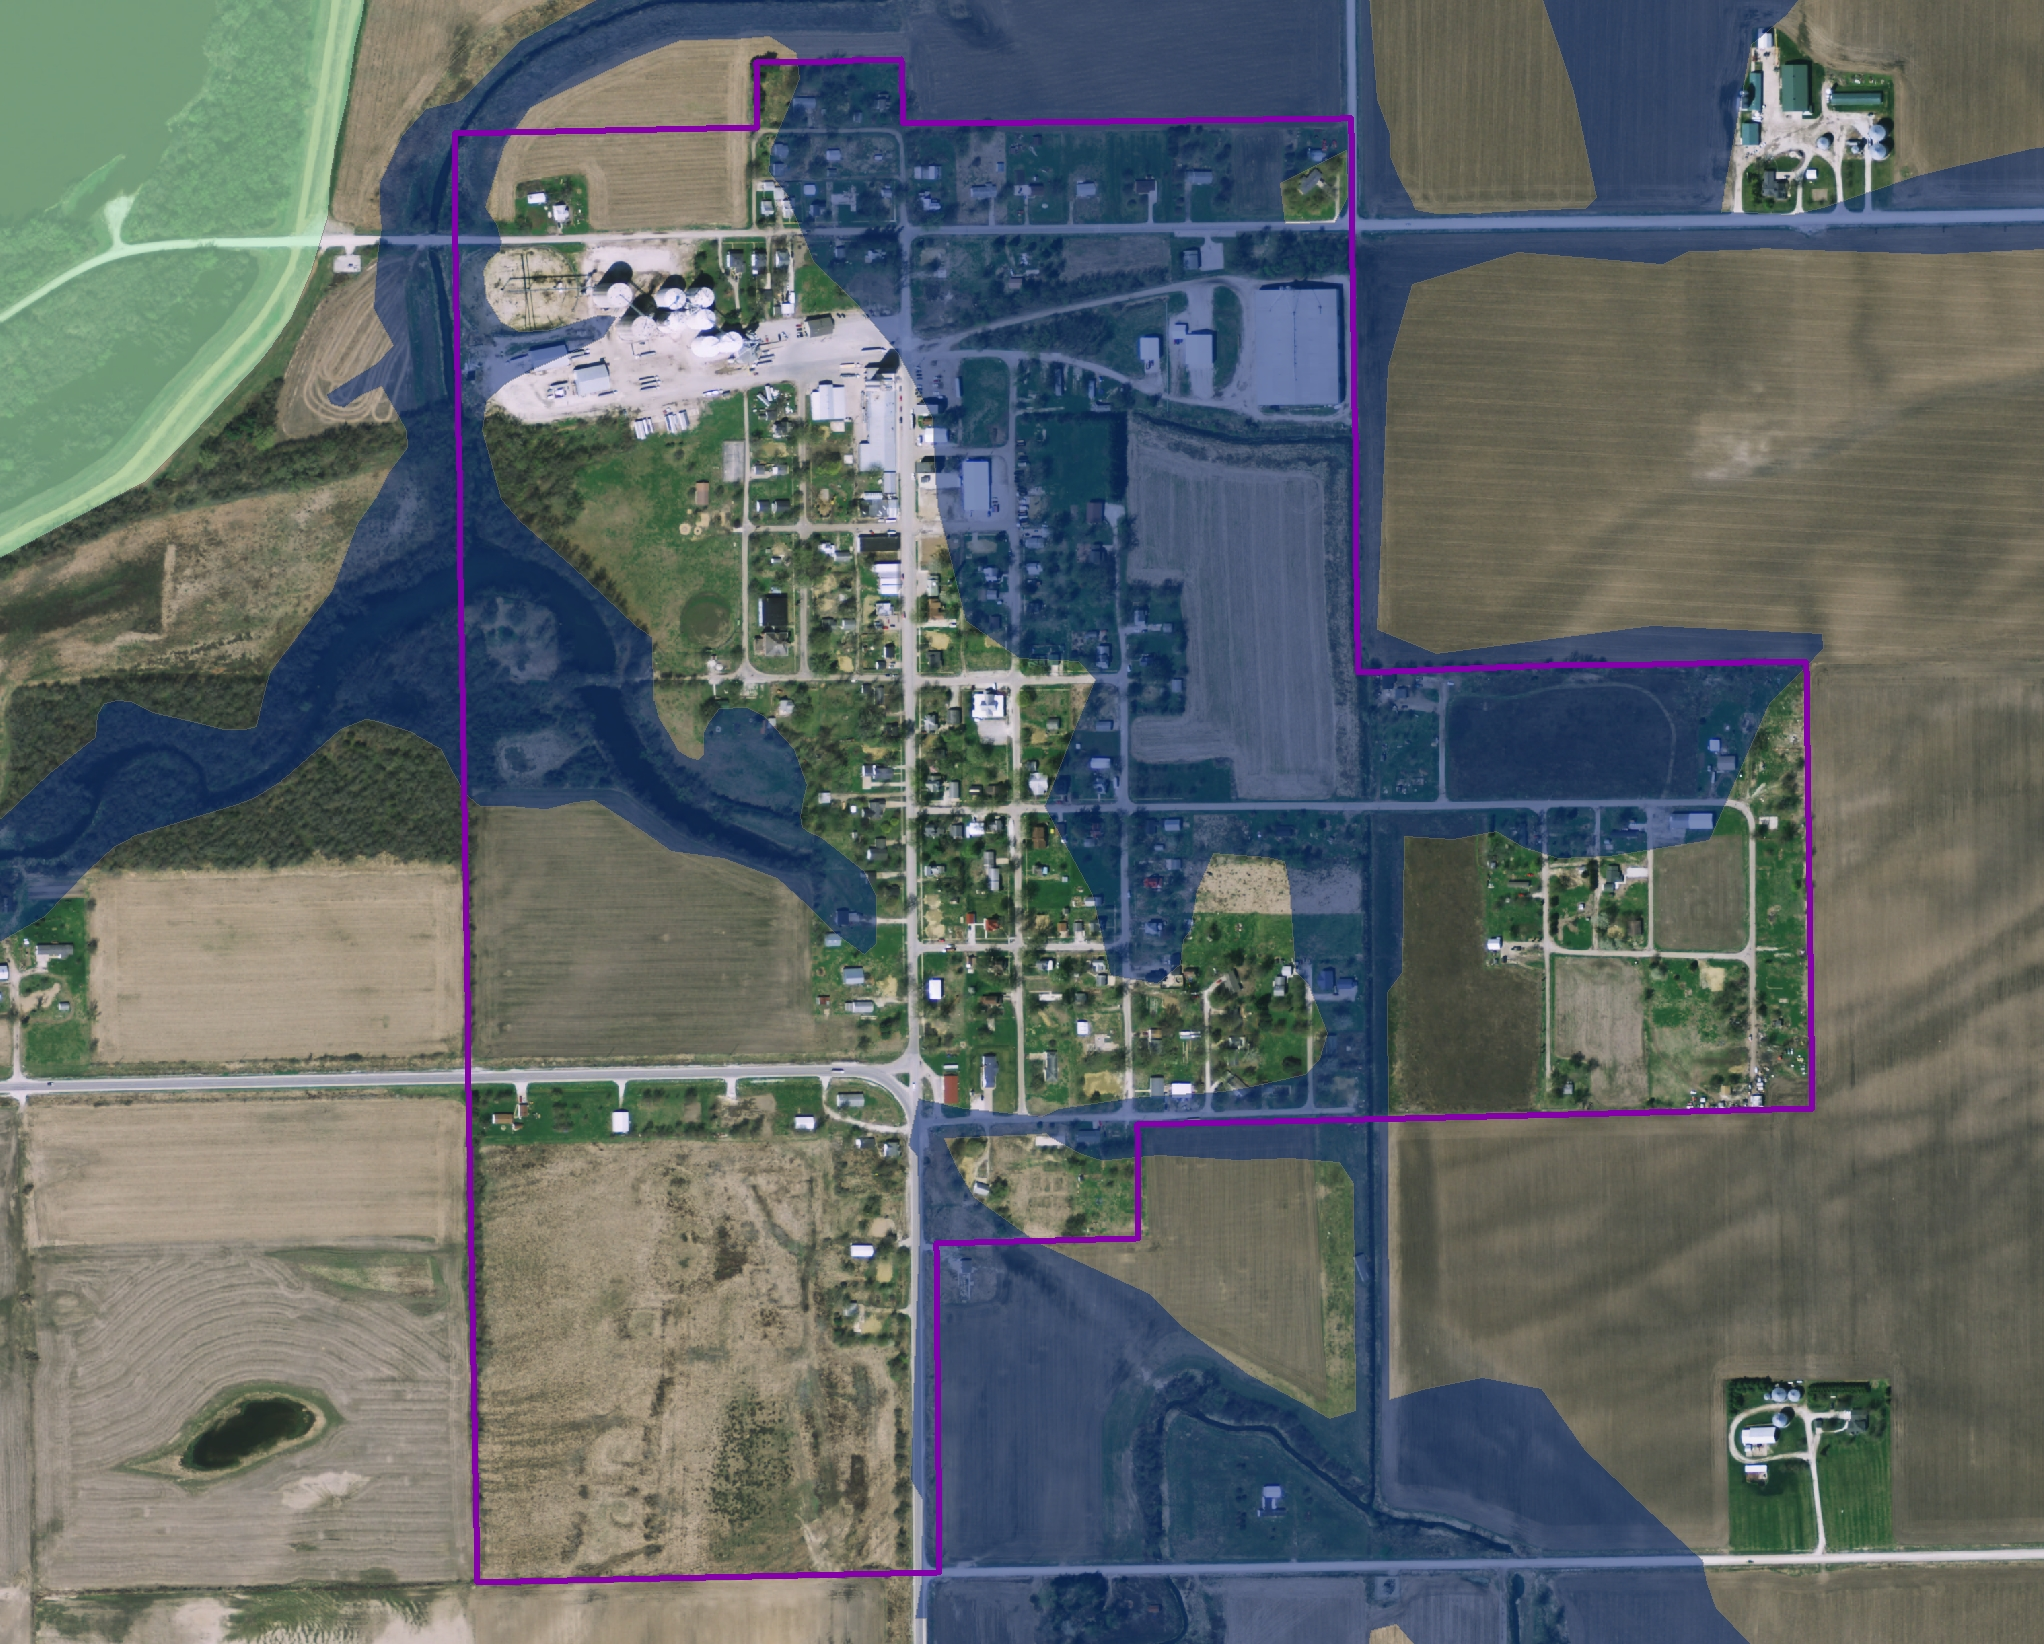 DNR Flood Map of Oakville, Ia.